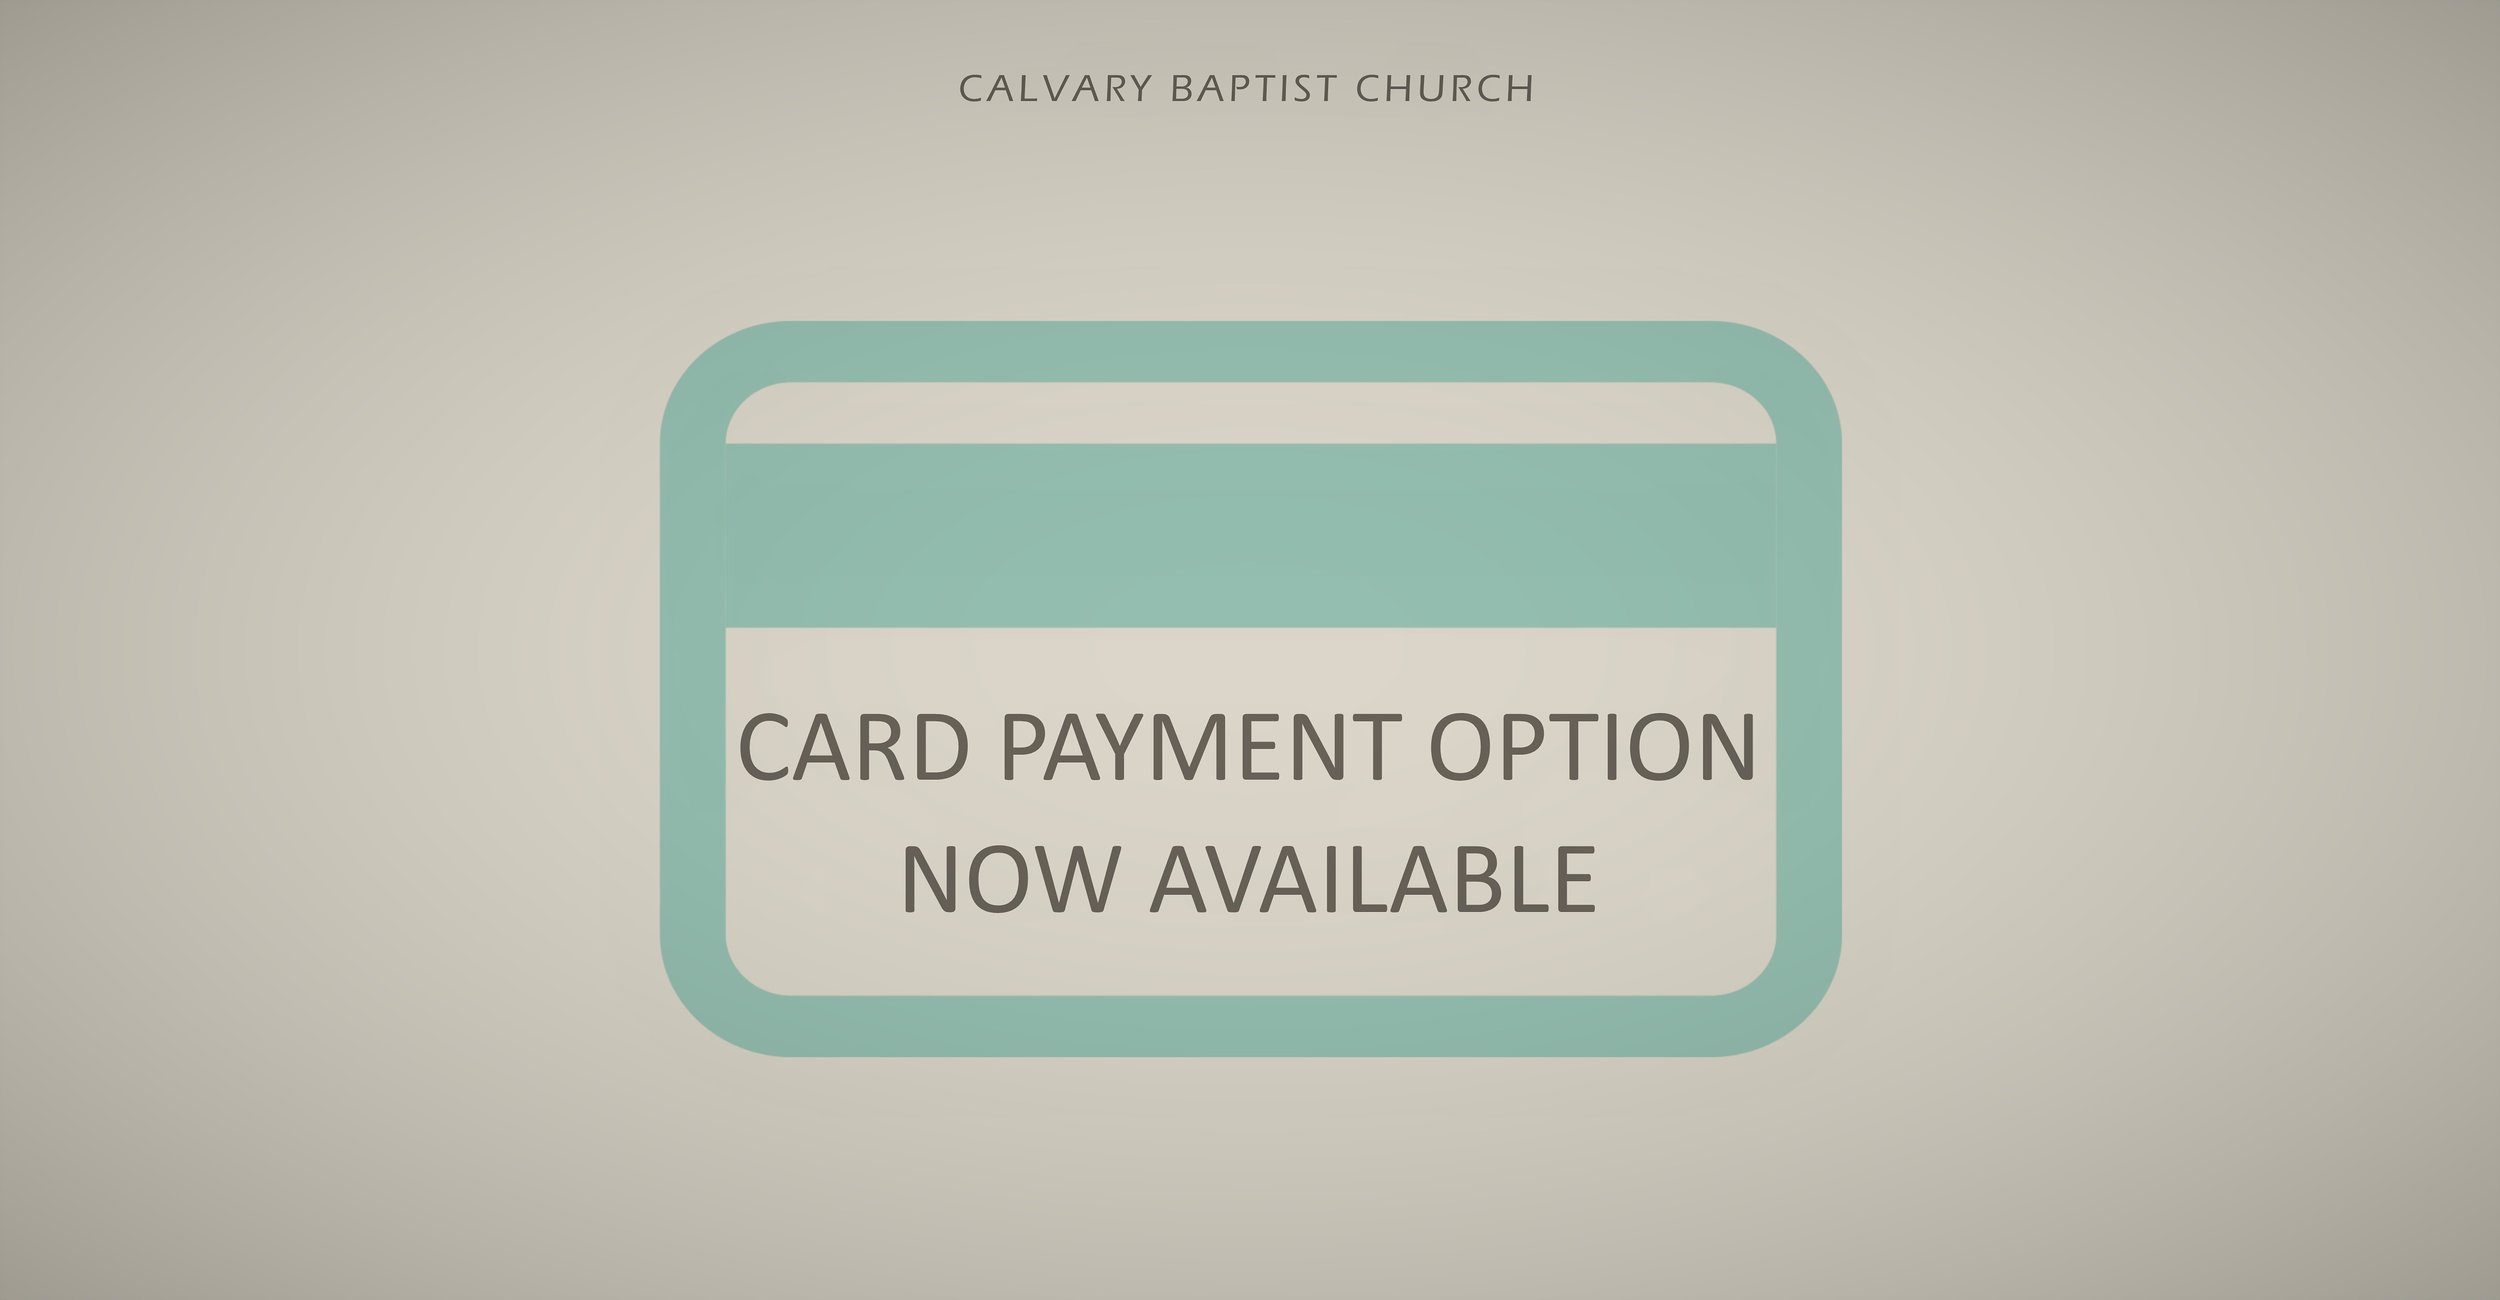 Card Payment Option facebook 012819.jpg